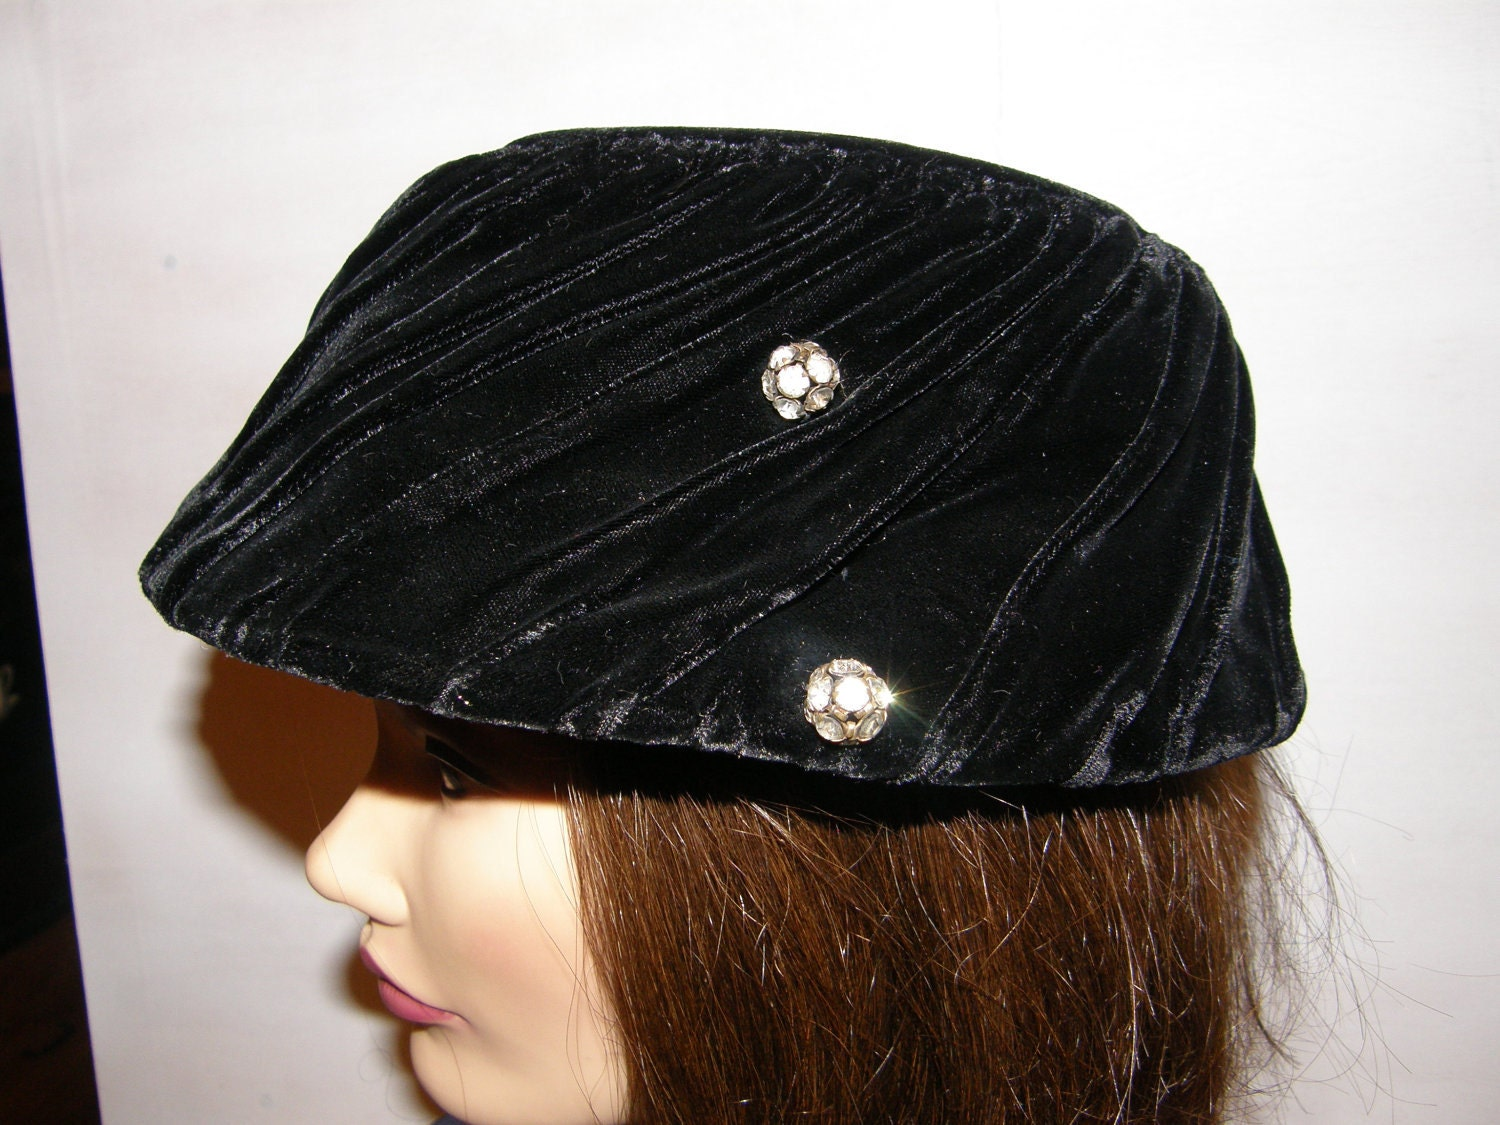 Vintage Hat Black Velvet Clamshell with Rhinestone Baubles